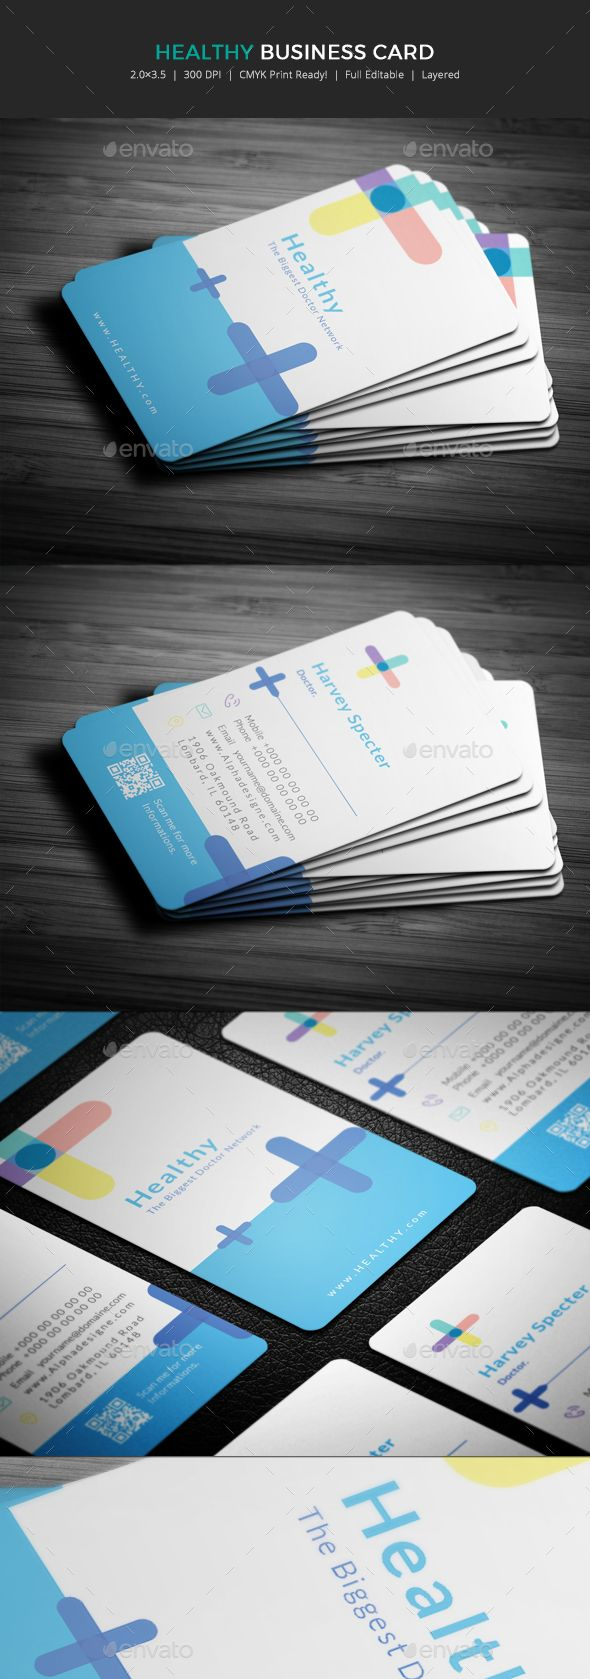 The 25 best business card maker ideas on pinterest card maker corporate business cards download here https magicingreecefo Image collections